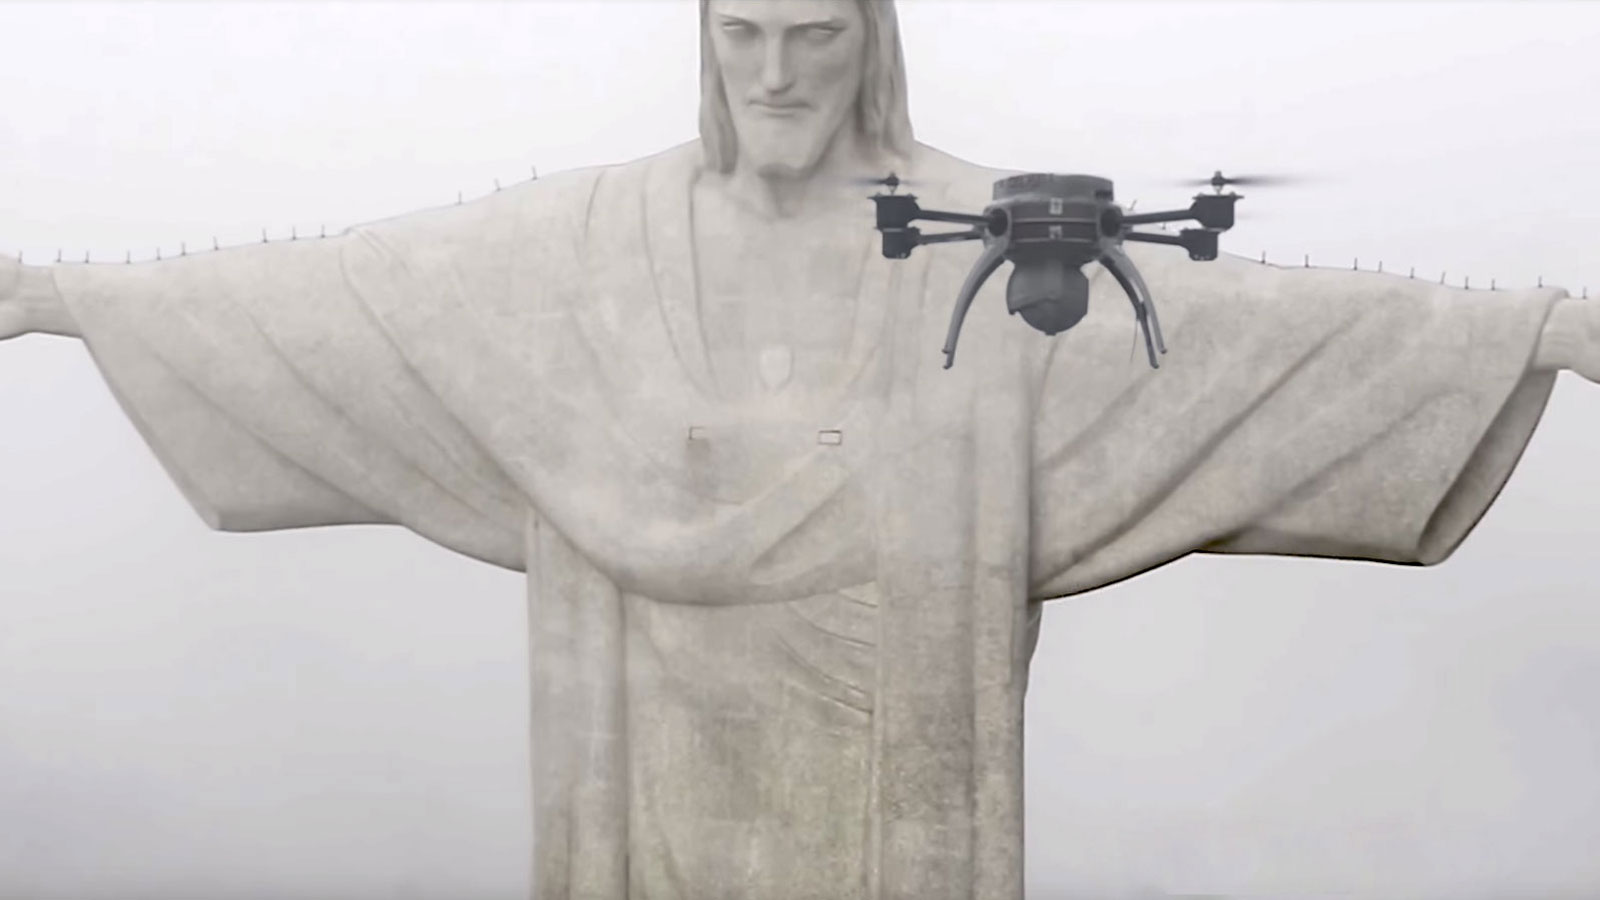 Pix4D drone mapping christ redeemer